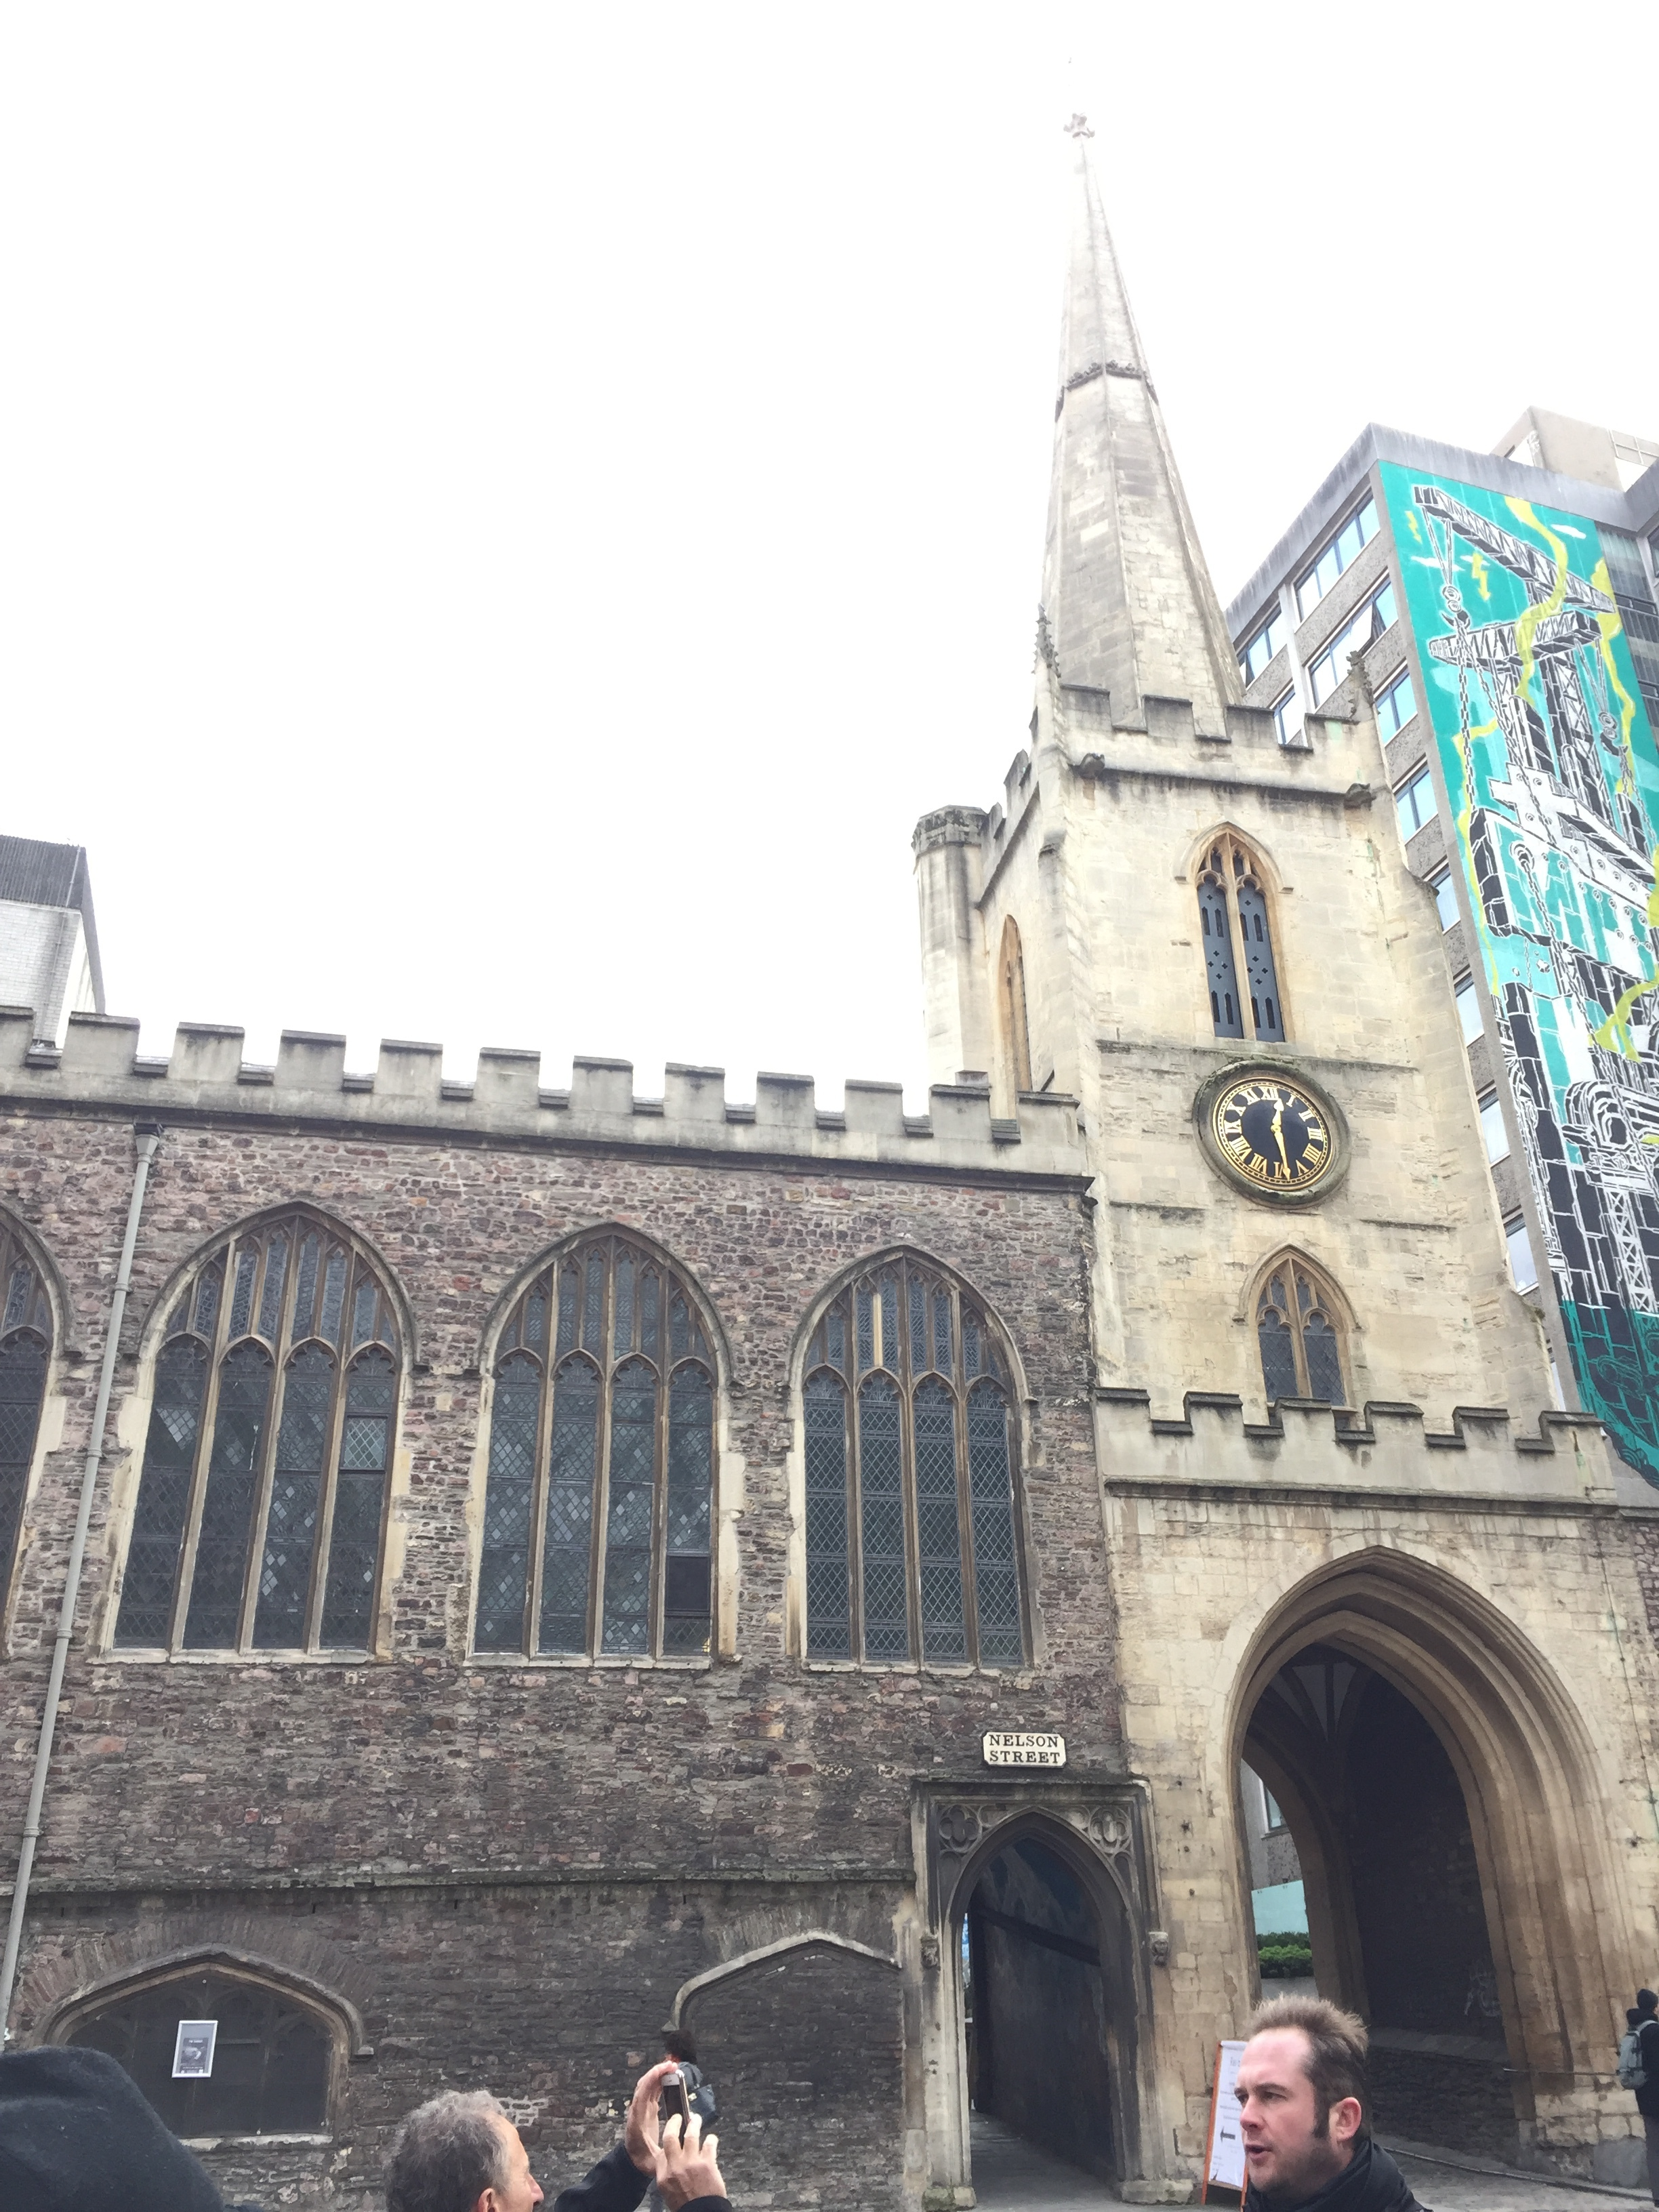 The only preserved medieval archway left in Bristol